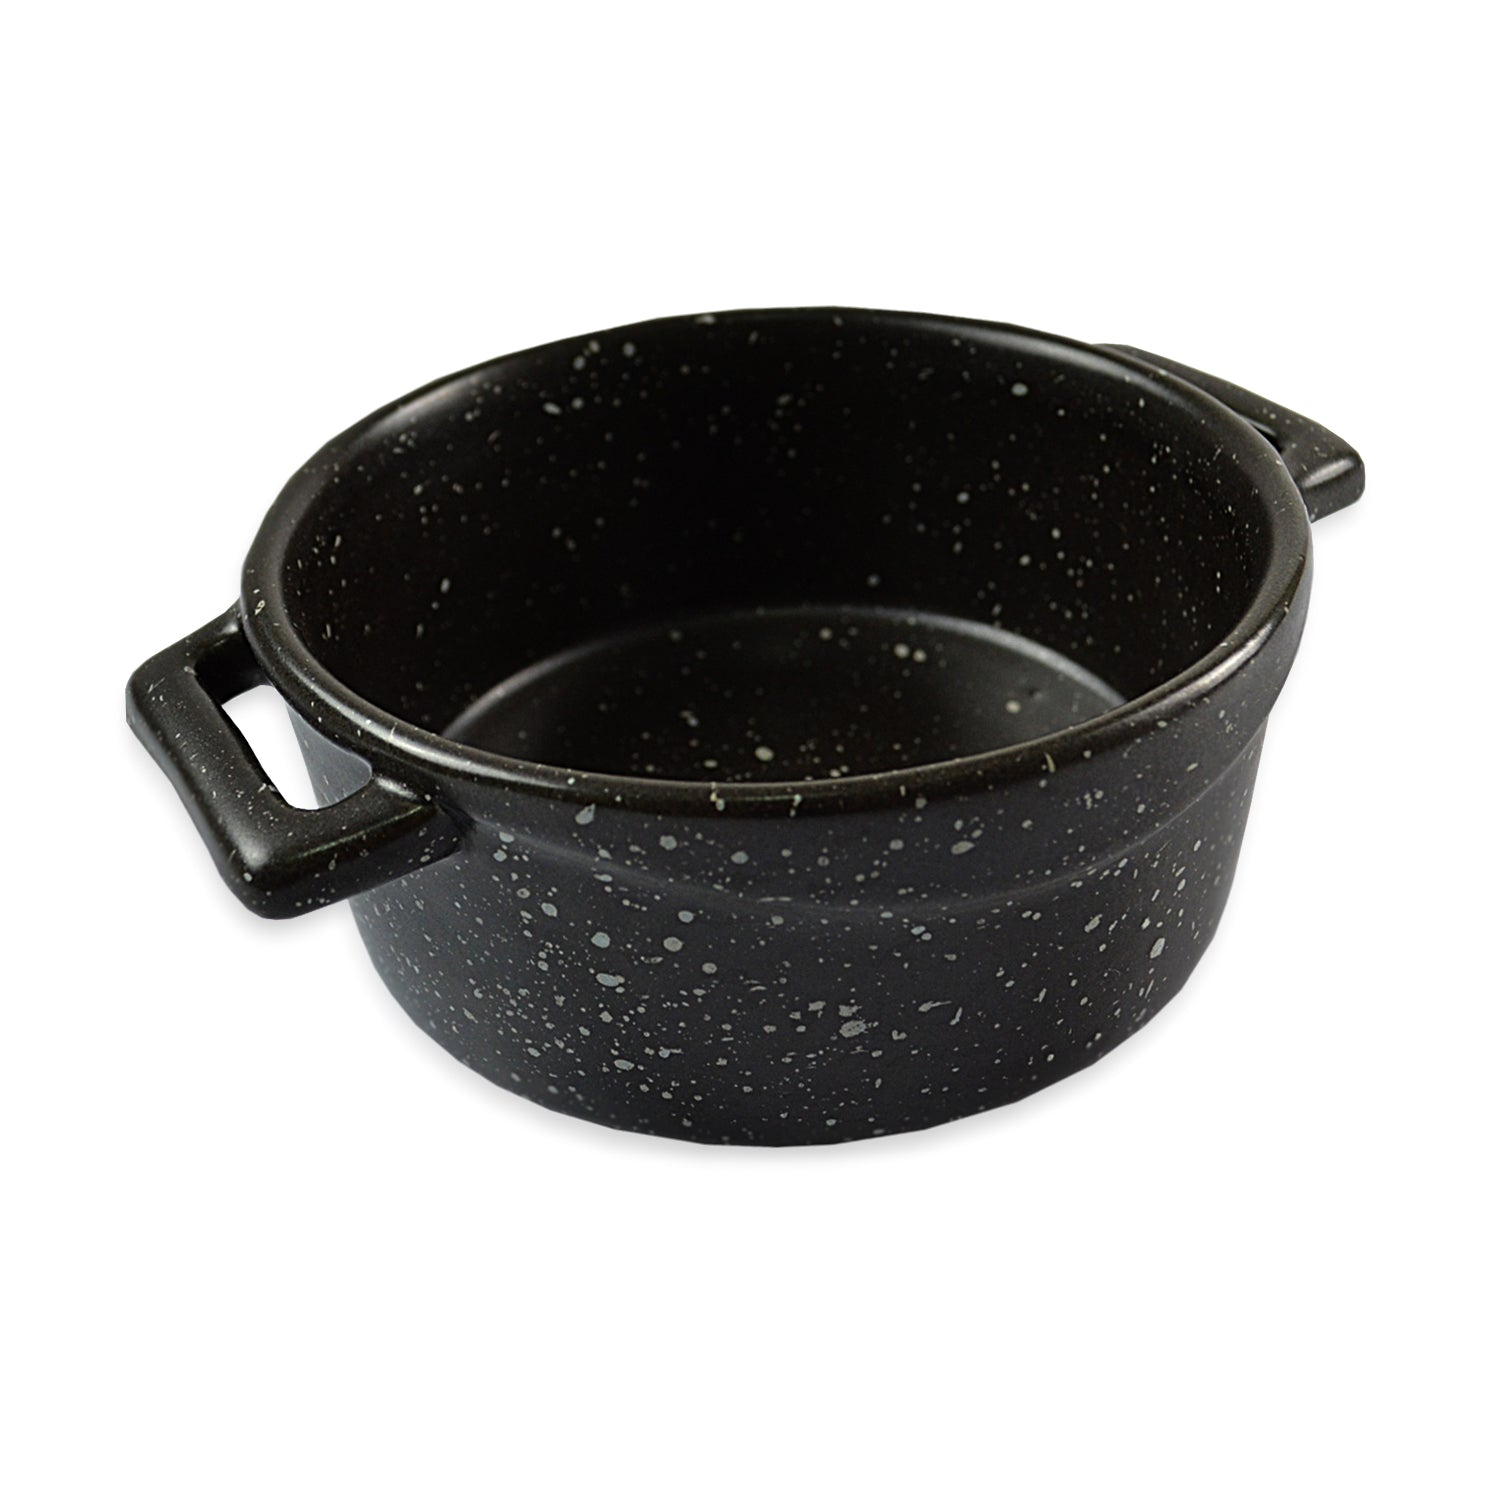 roro Ceramic Two Handle Serving and Soup Bowl, 7 Inch Black Mottled